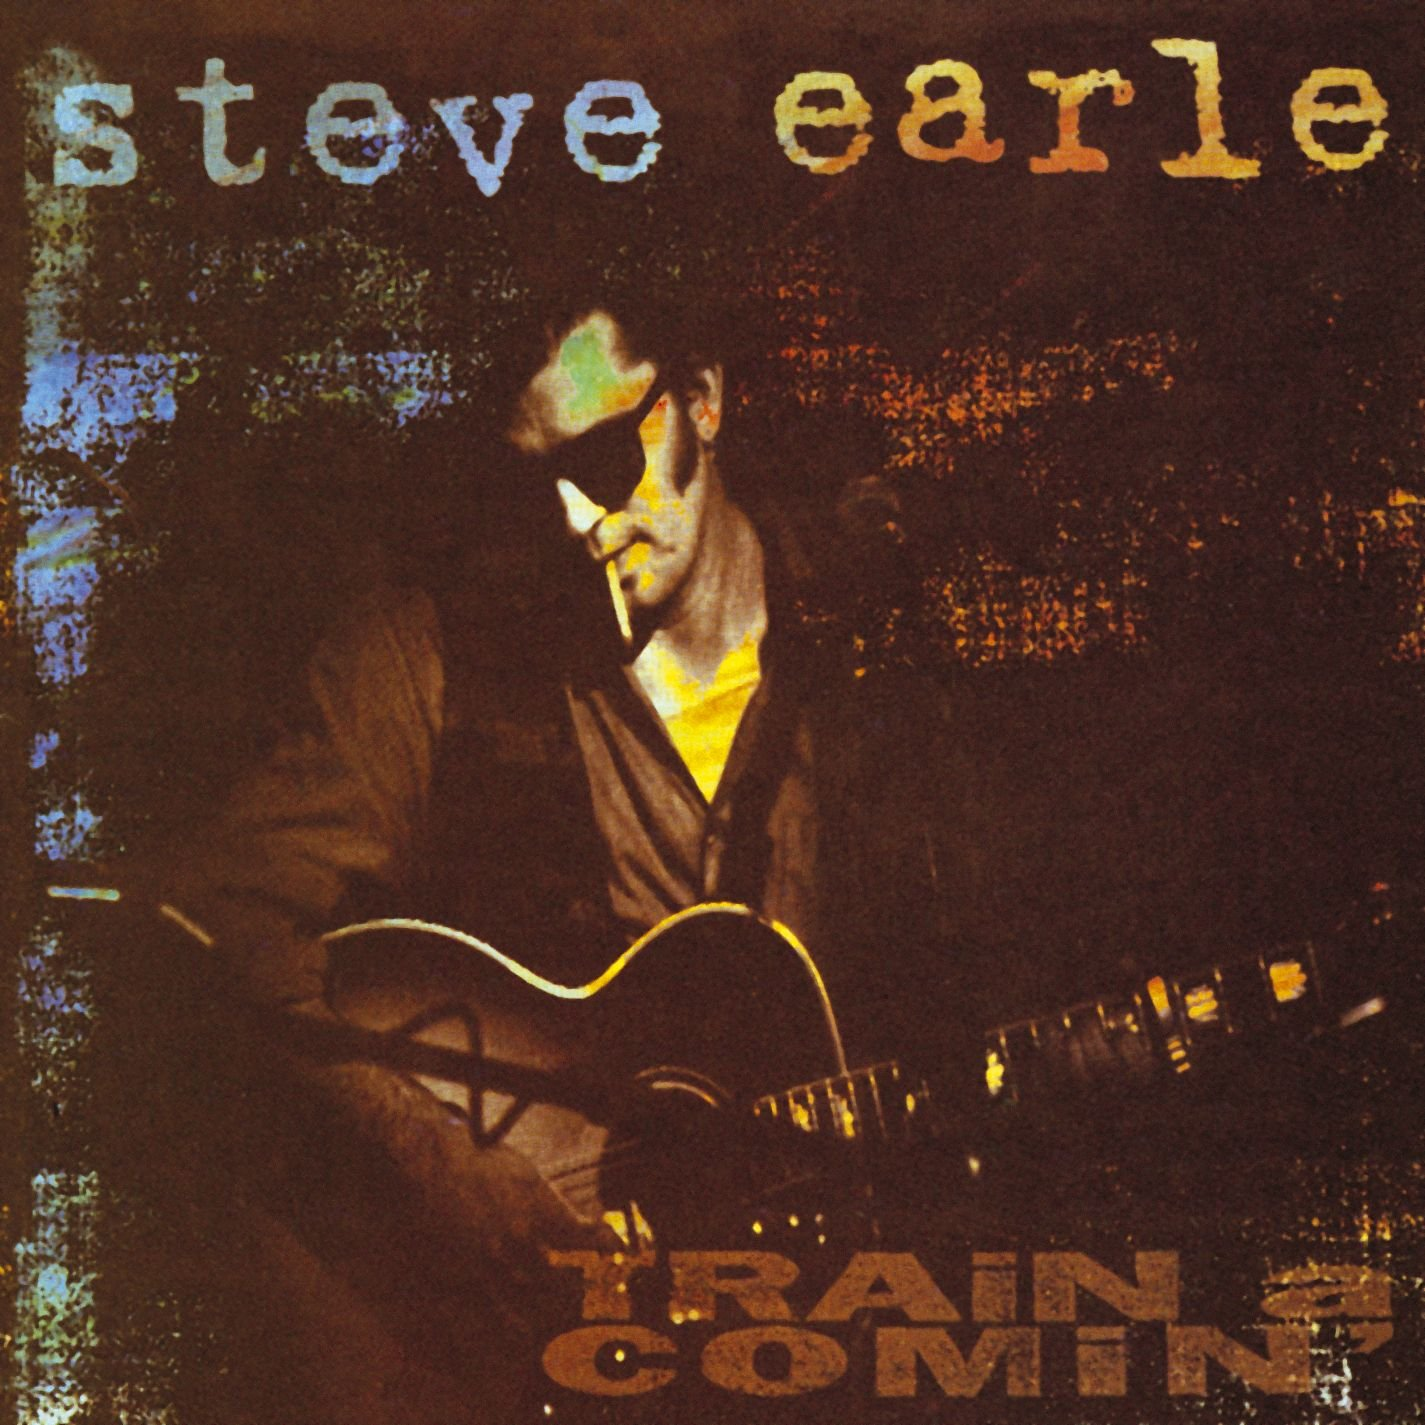 Steve Earle - Train A Comin\' - Amazon.com Music